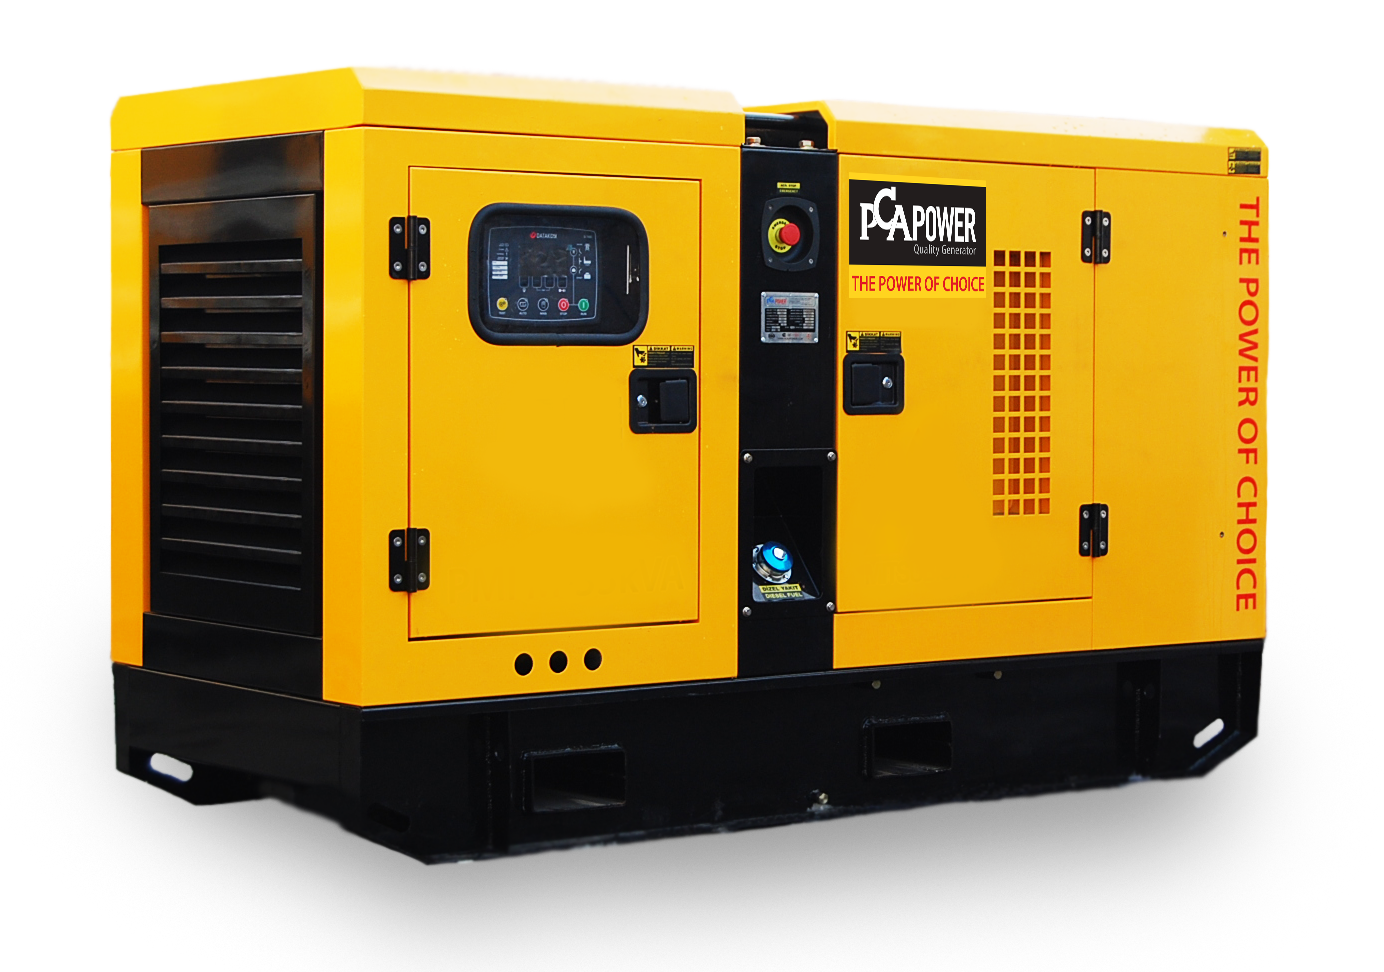 Electric clipart electricity generation. Generator png image purepng